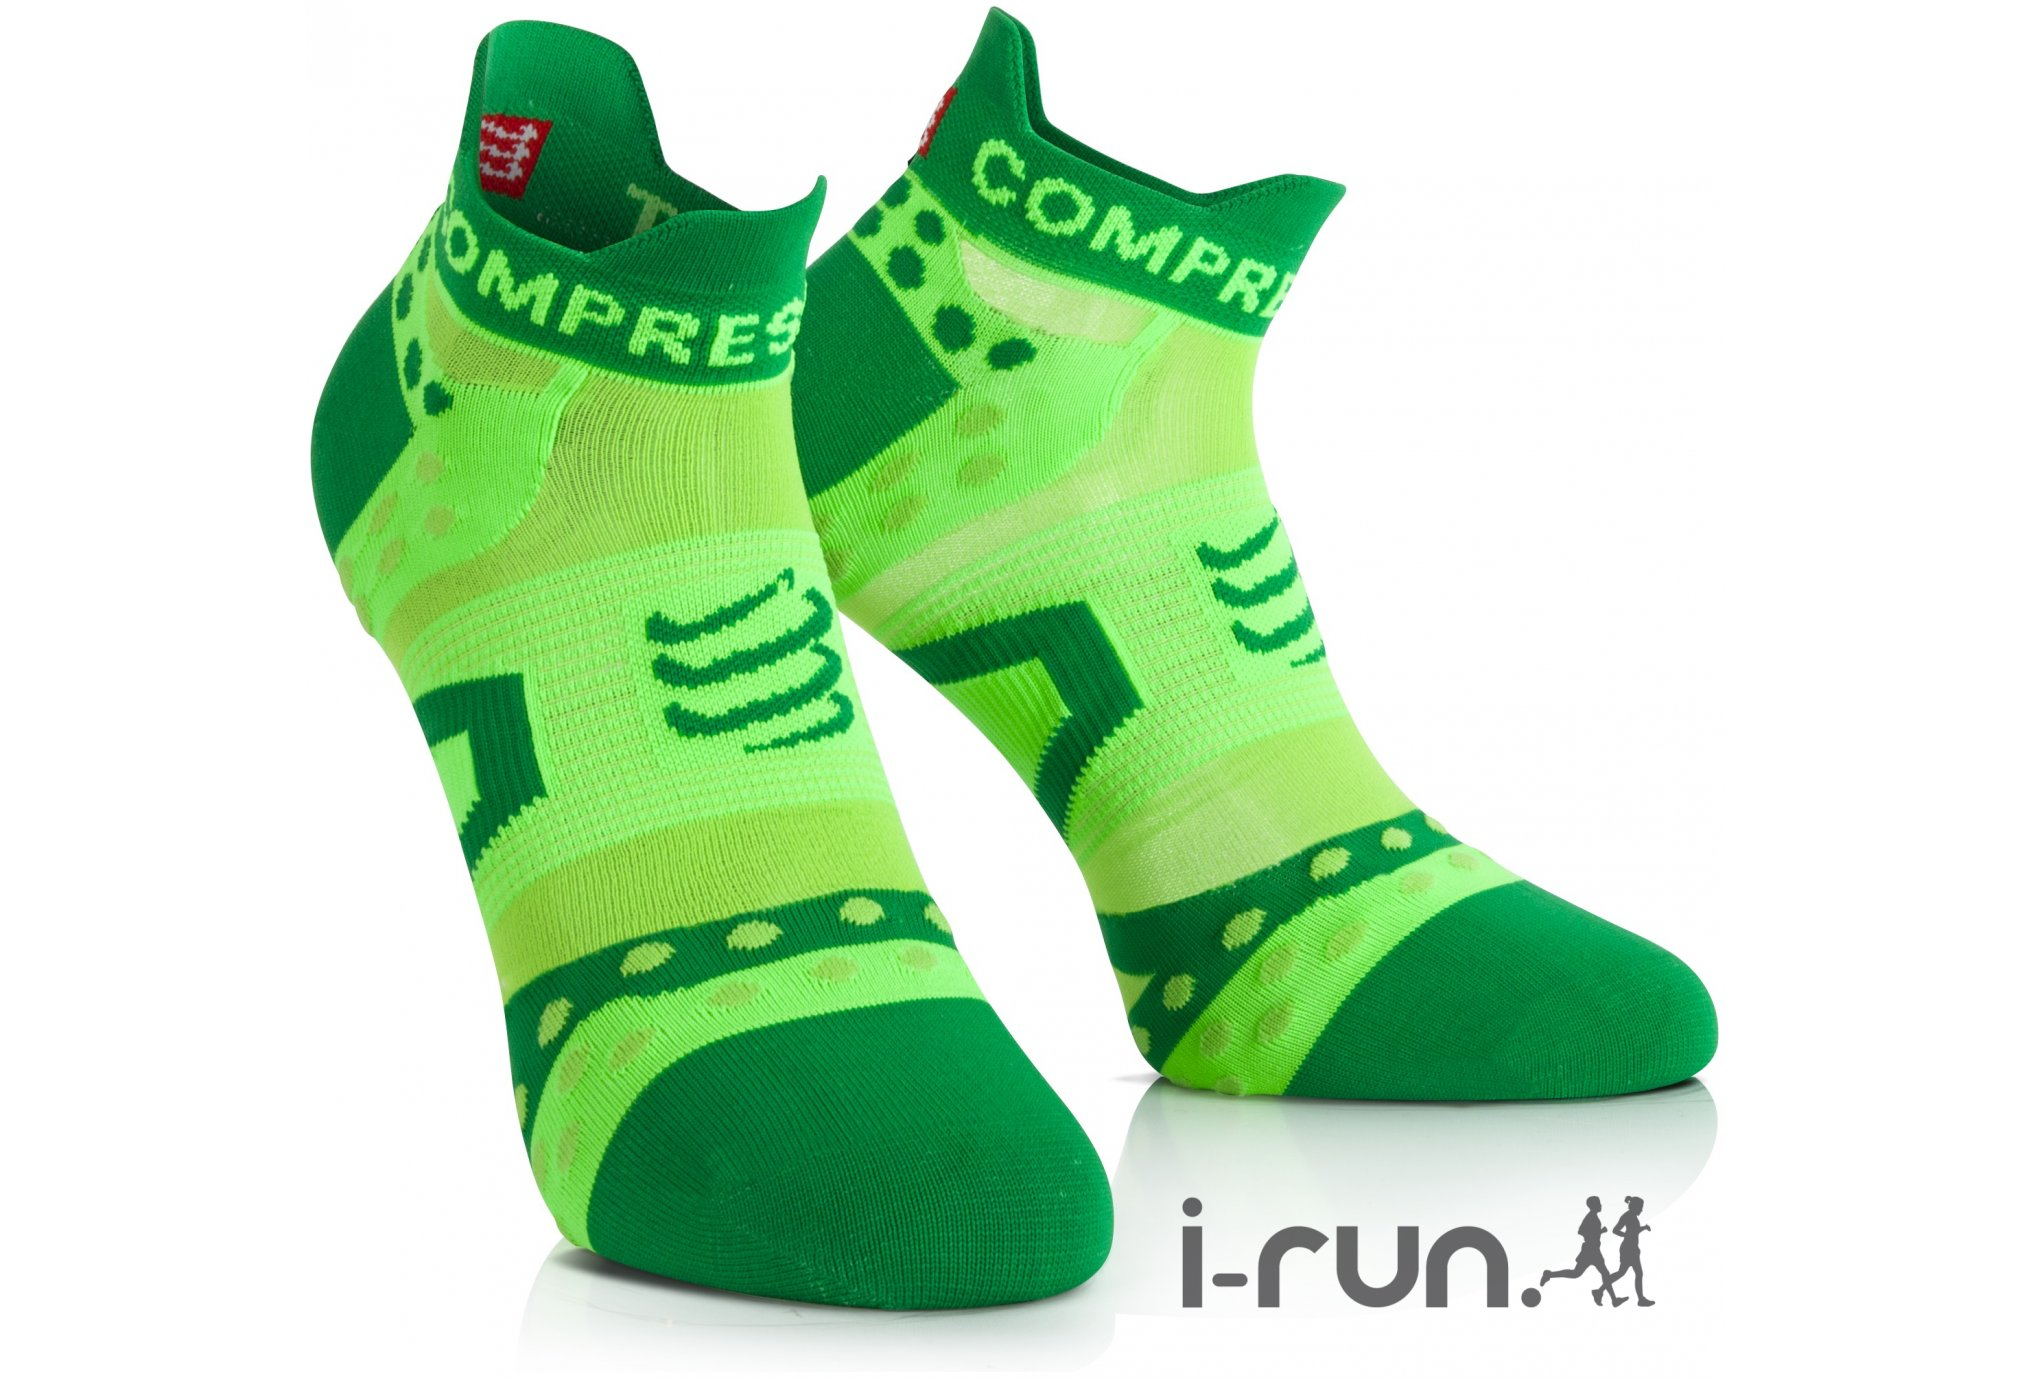 Compressport Chaussettes Pro Racing Ultra Light Low Cut Chaussettes